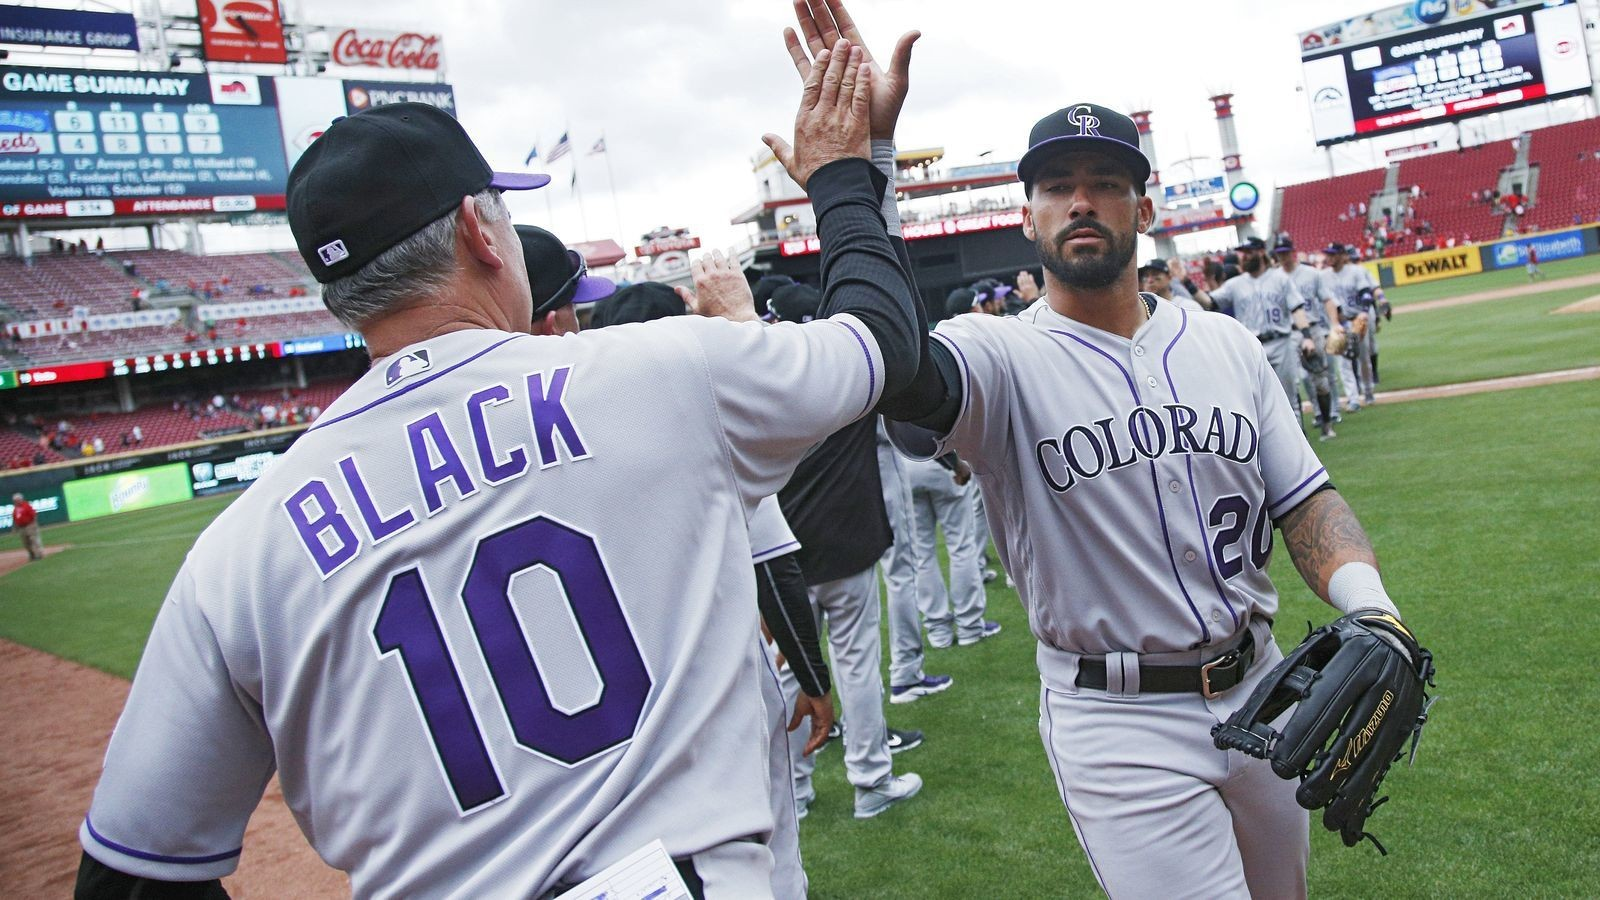 Colorado Rockies have been lucky, and that's great